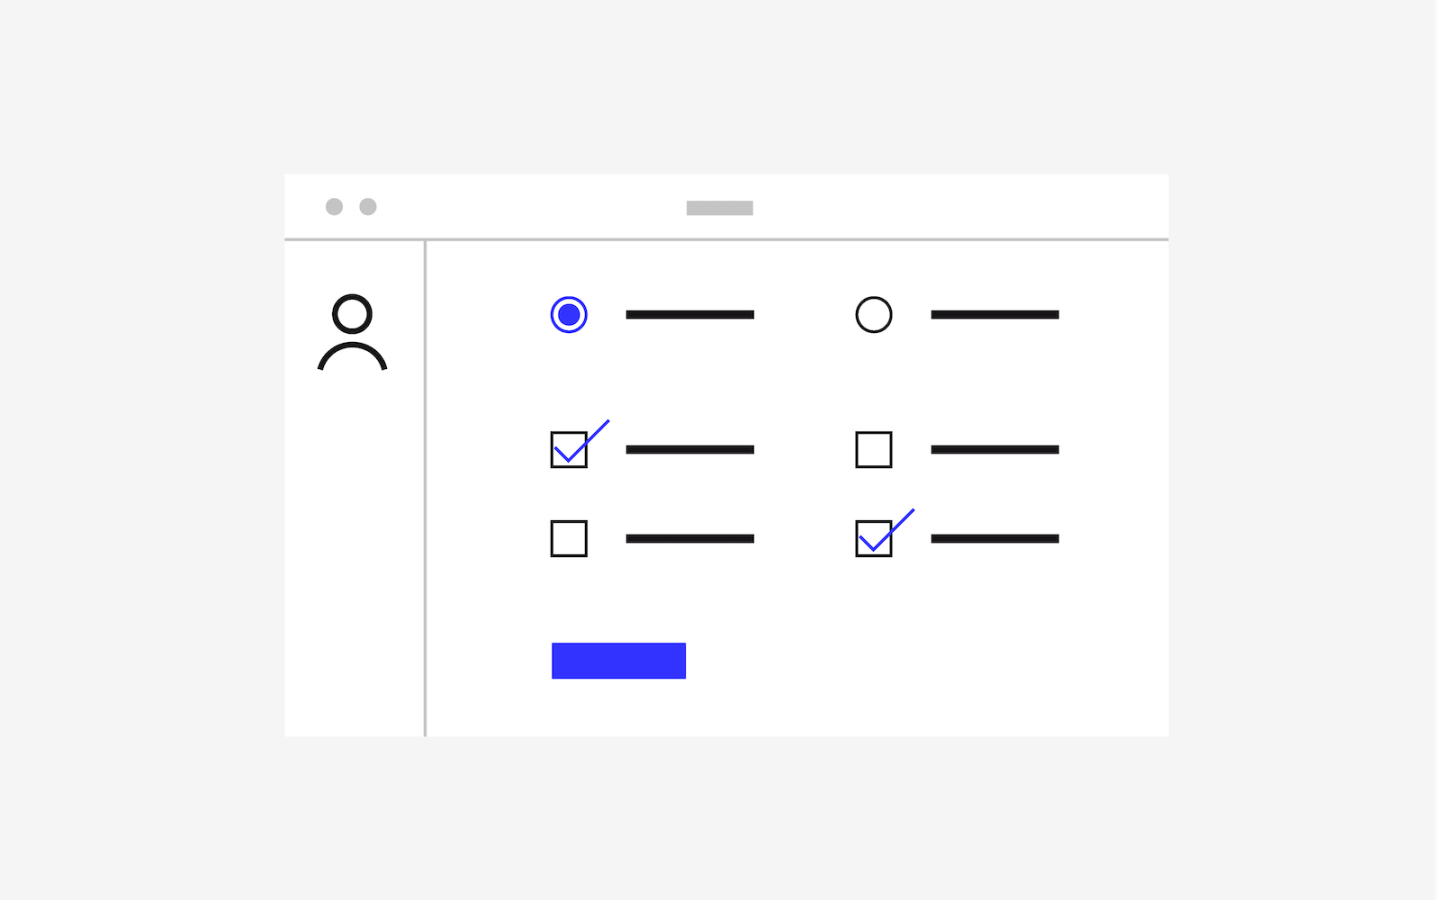 Illustration of a dashboard with a row of radio buttons and 2 rows of checkboxes